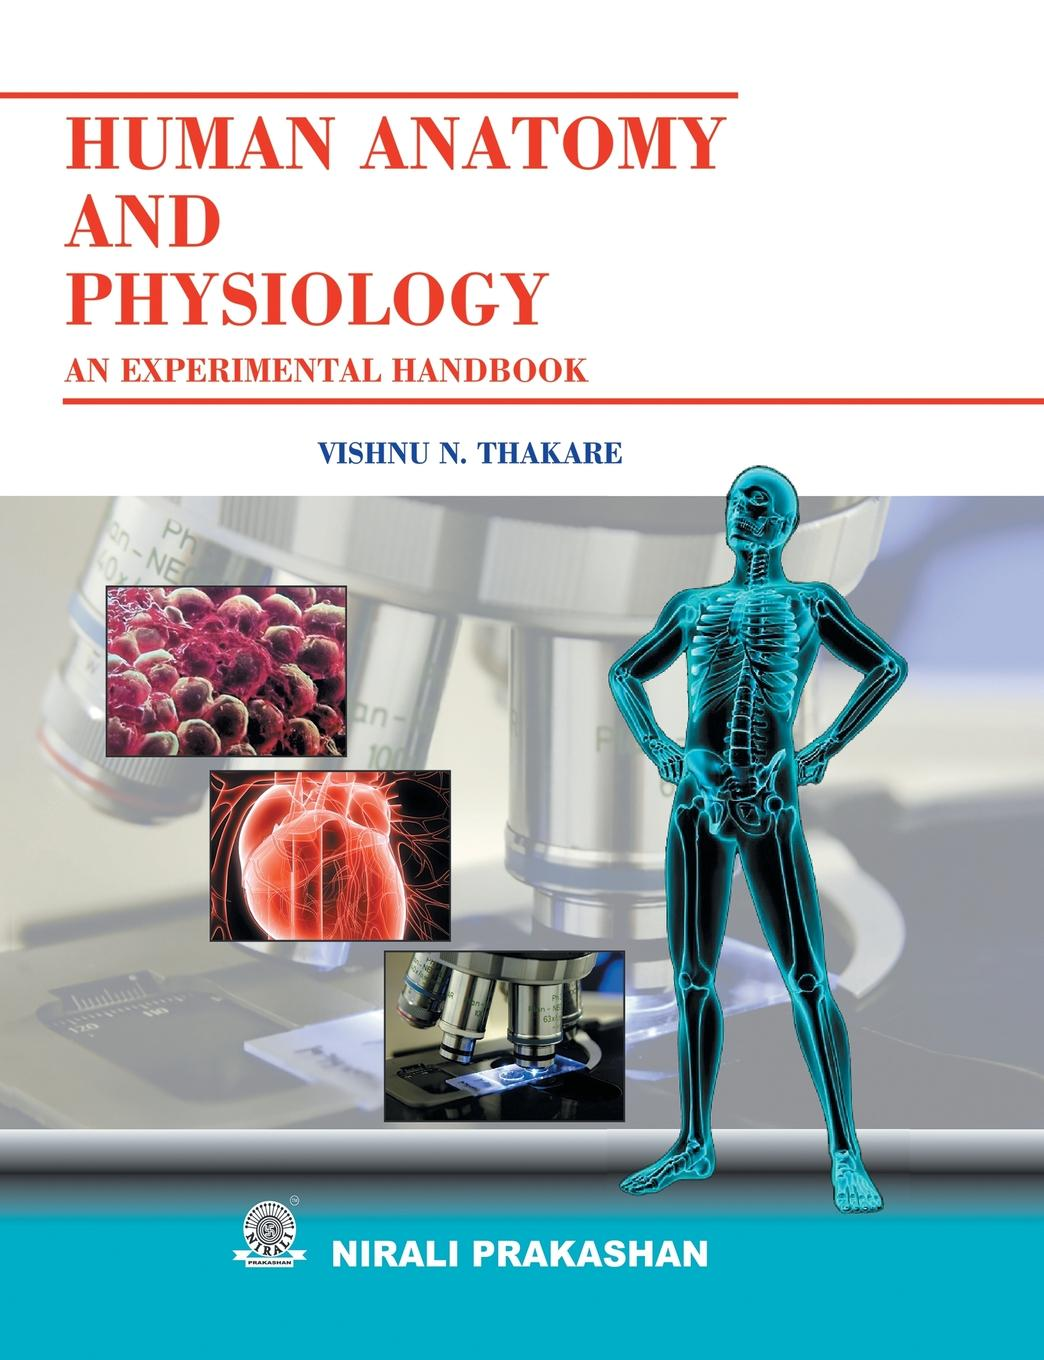 VISHNU N THAKARE THAKARE HUMAN ANATOMY AND PHYSIOLOGY gary matthews g cellular physiology of nerve and muscle